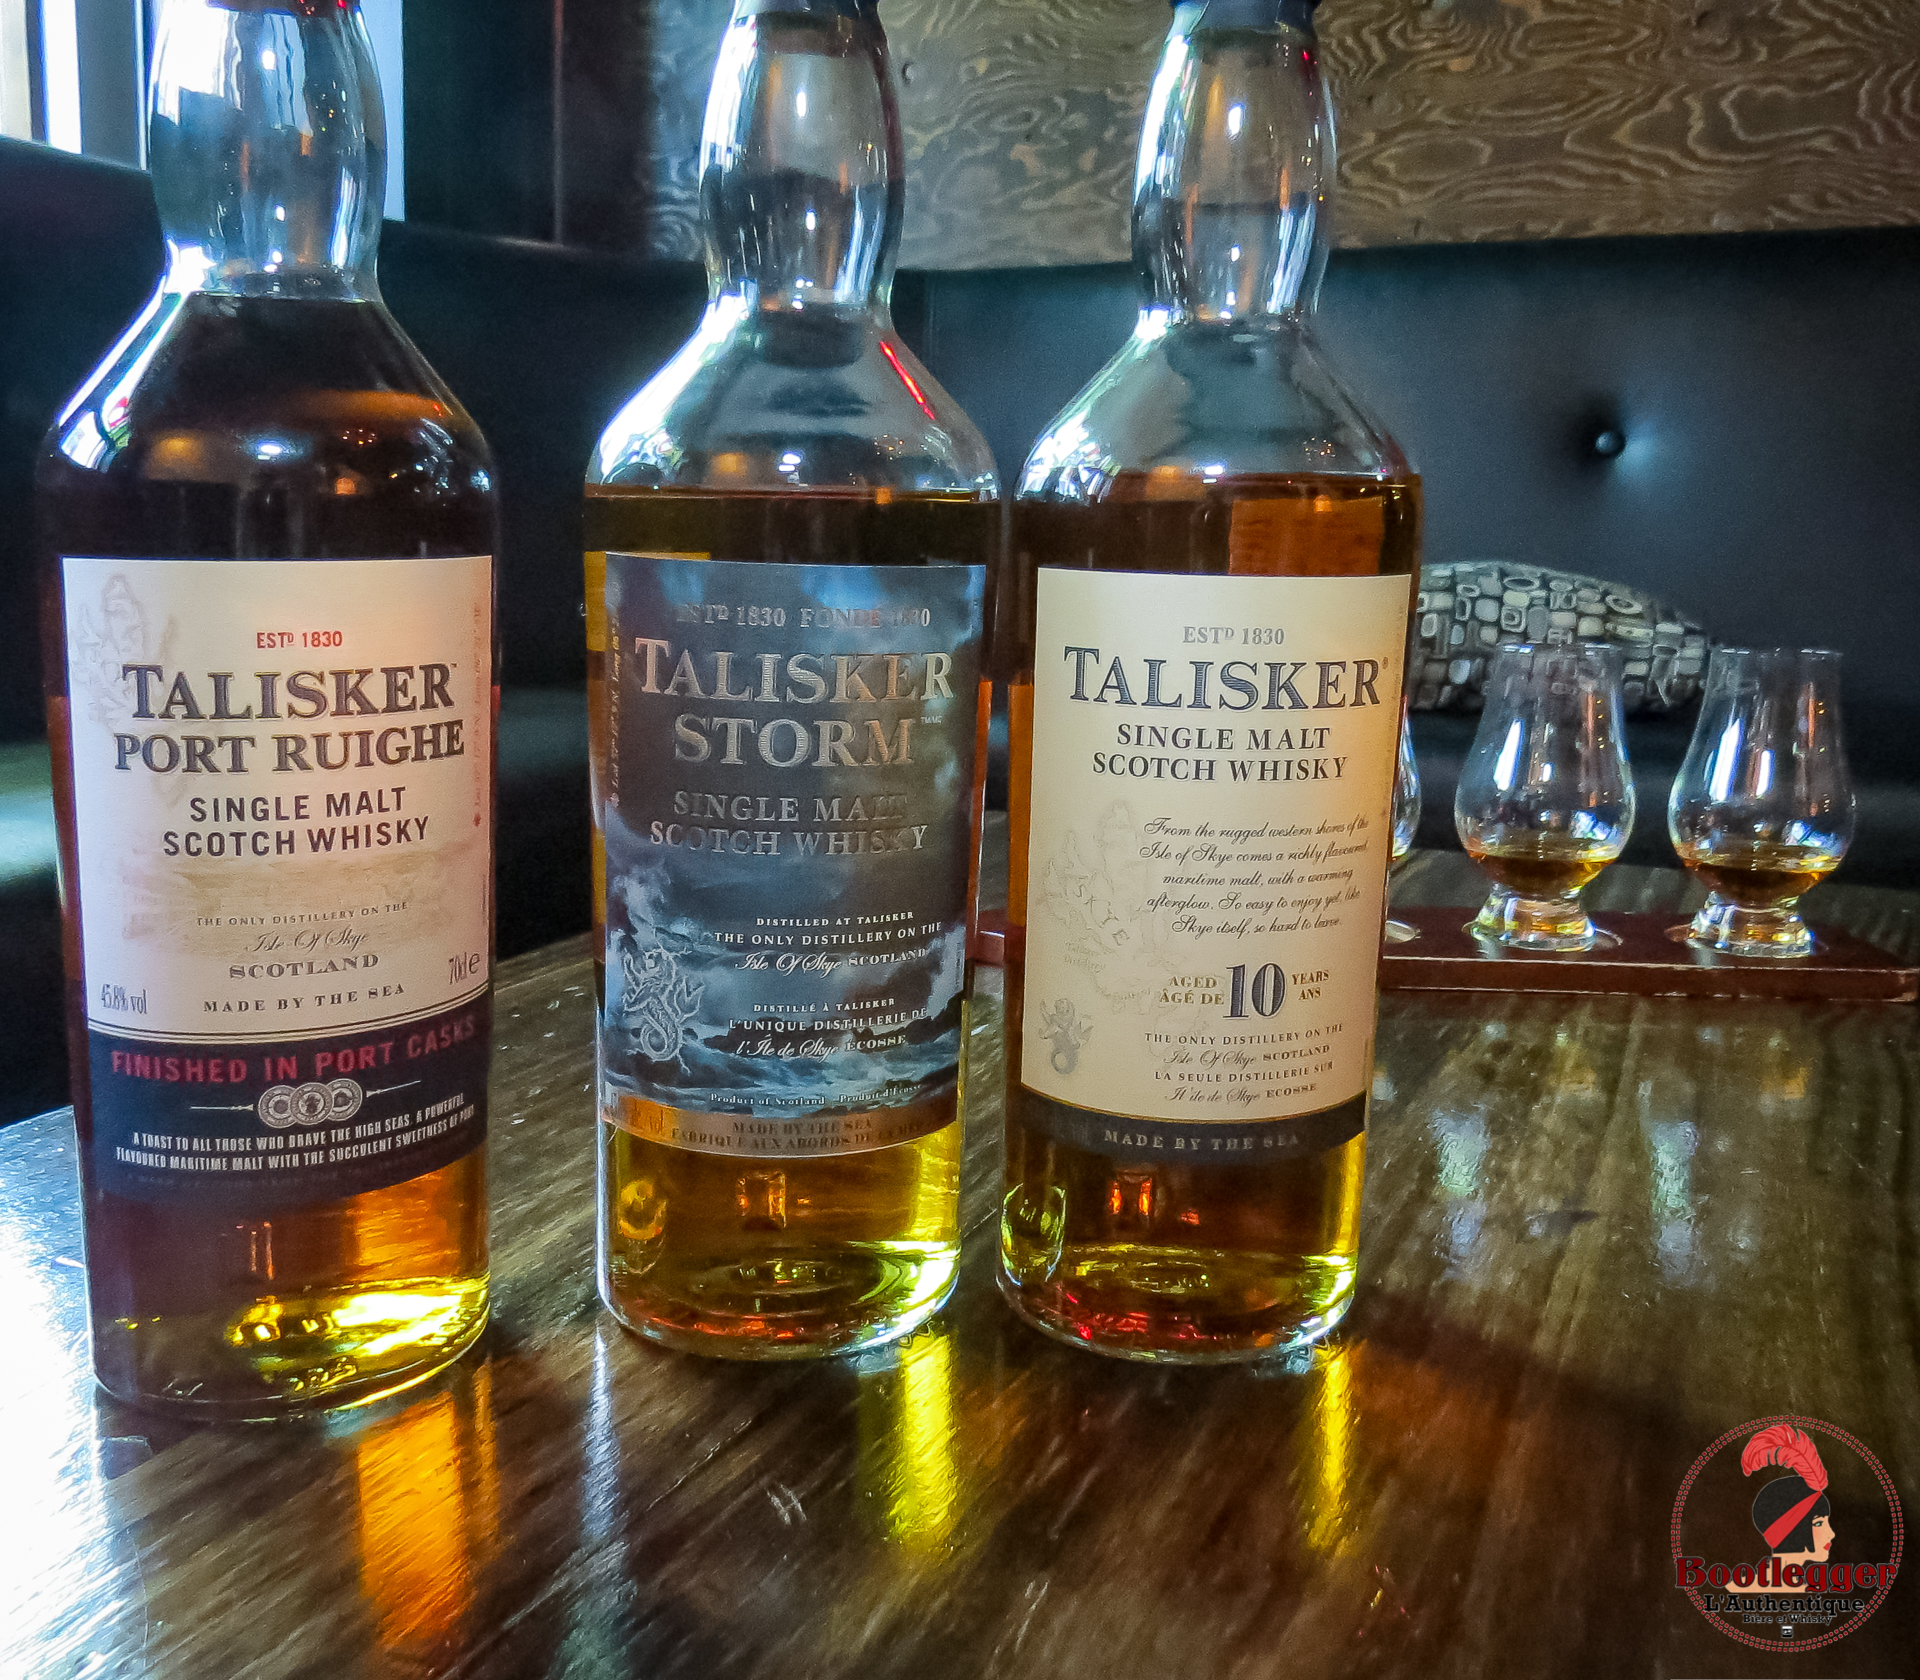 Flight Taliasker Single malt Scotch